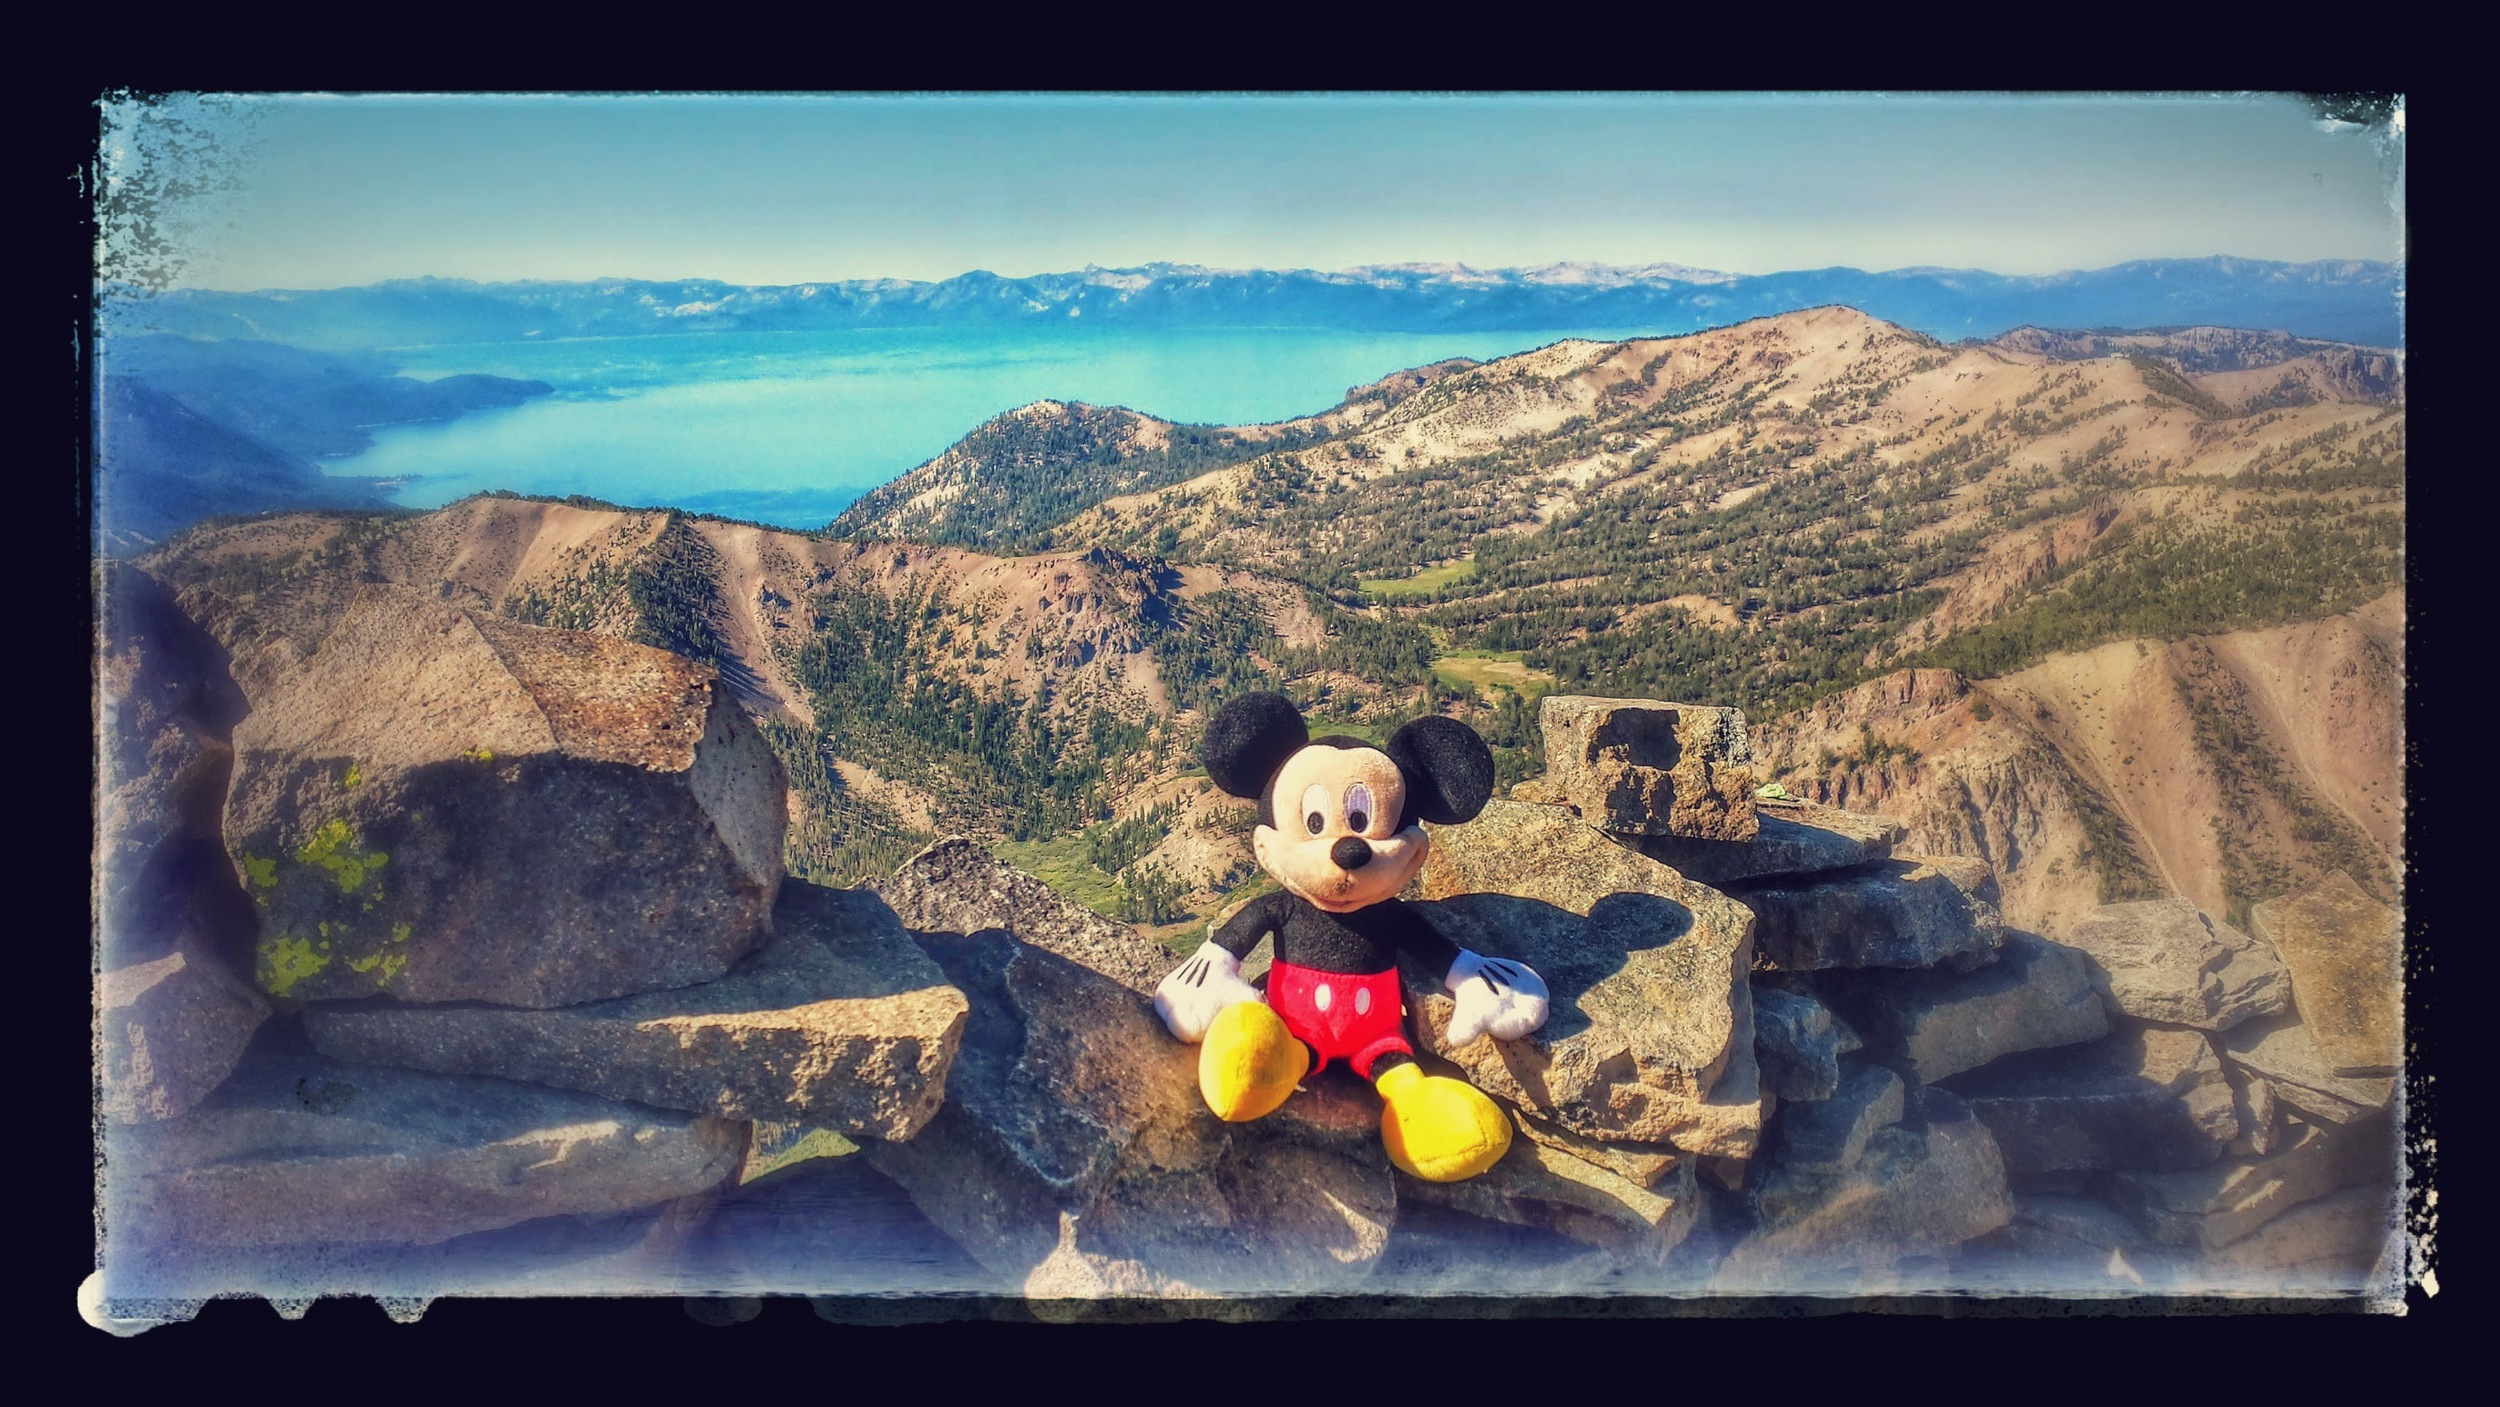 Mickey Mouse accompanies me on every hike to remind me of all the special Make-A-Wish Kids all around the world! Never take a single day for granted and never be petty. Live life to the fullest and share the love of nature!!